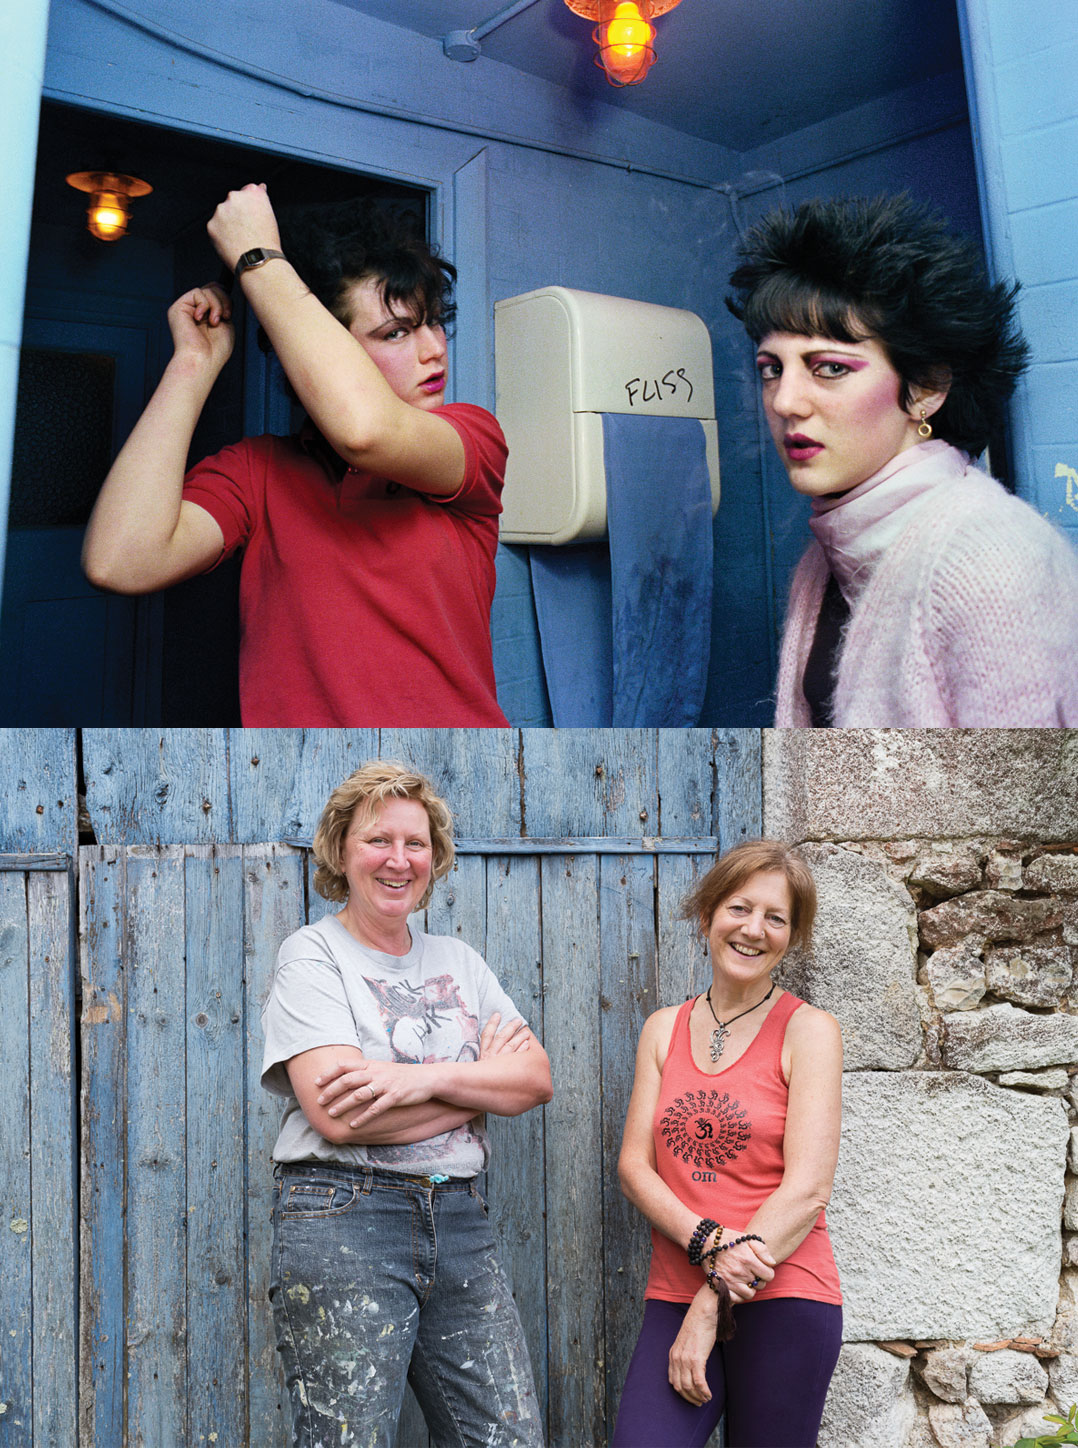 Shelley Spencer and Di Sage, The White Swan in Crystal Palace, London, November 1980. (Top) Shelley Spencer and Di Sage, Les Passeroses Angouleme in France, May 2017. (Bottom) Found via BBC